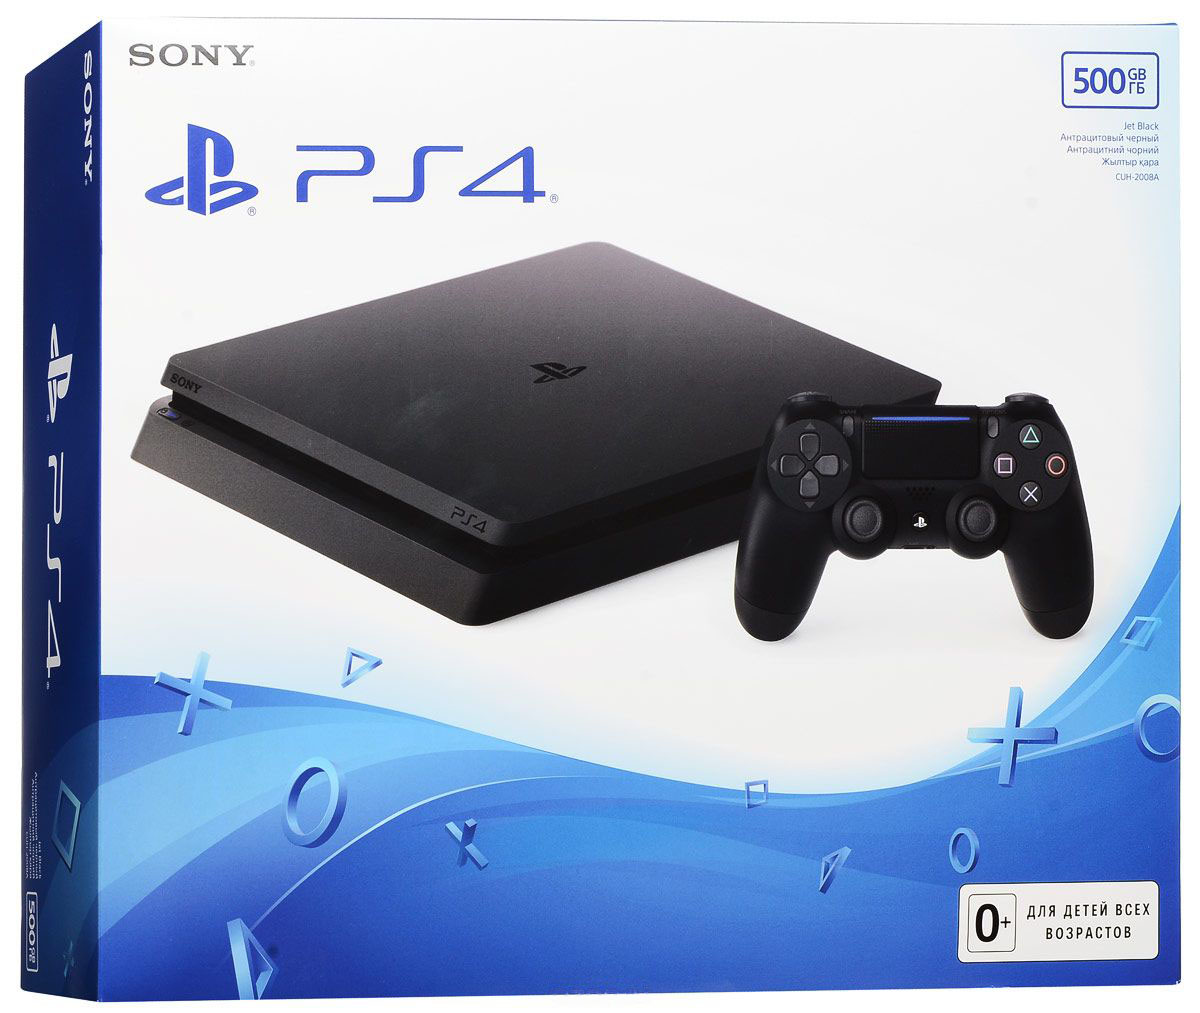 PlayStation 4 Slim (500 GB) Россия